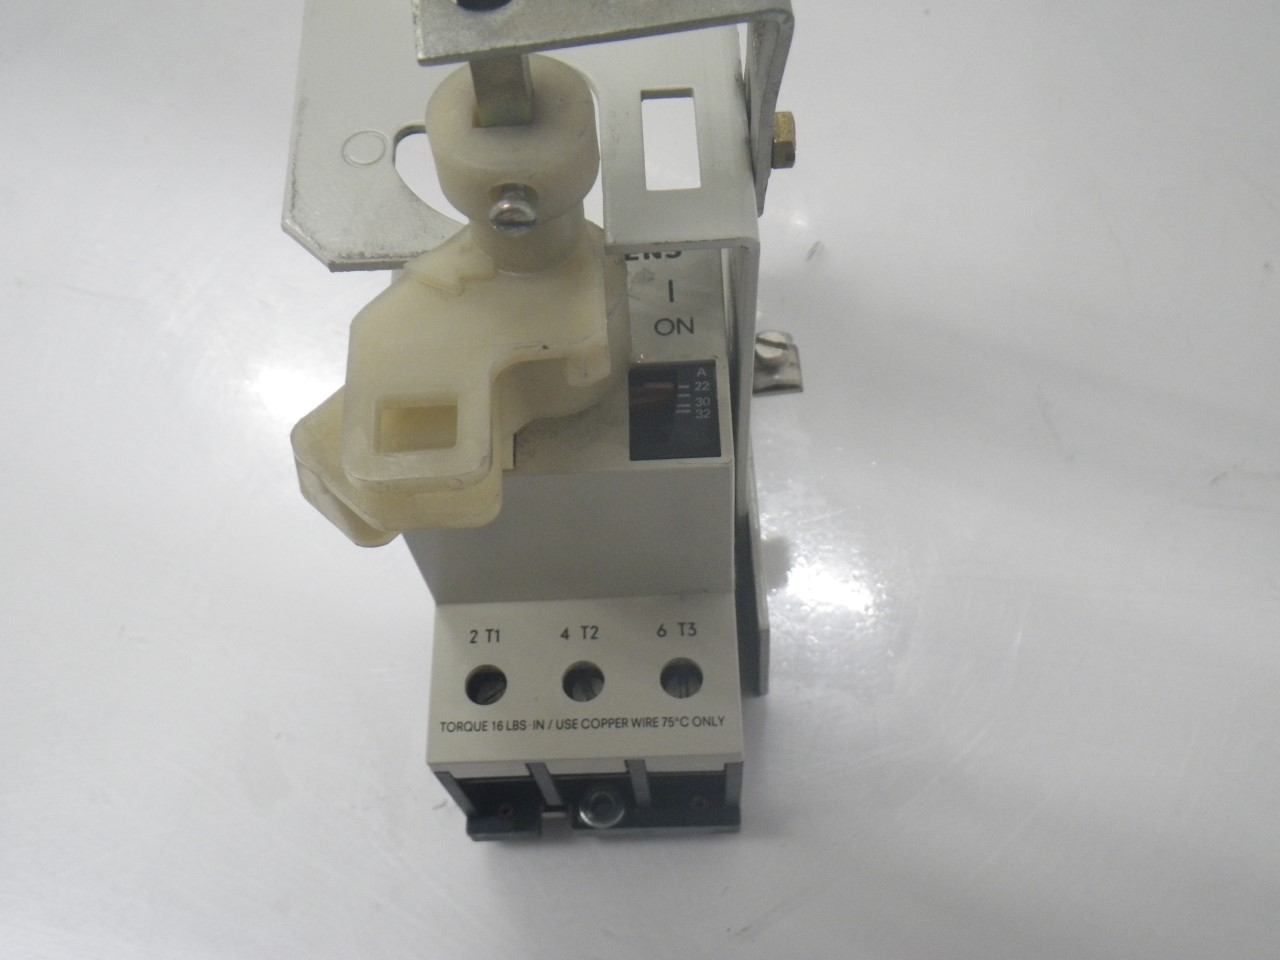 IMGP68893VE3-000-2PA00Siemens 3ve3-000-2pa00 Starter Protector 22-32a (Used Tested) (13)